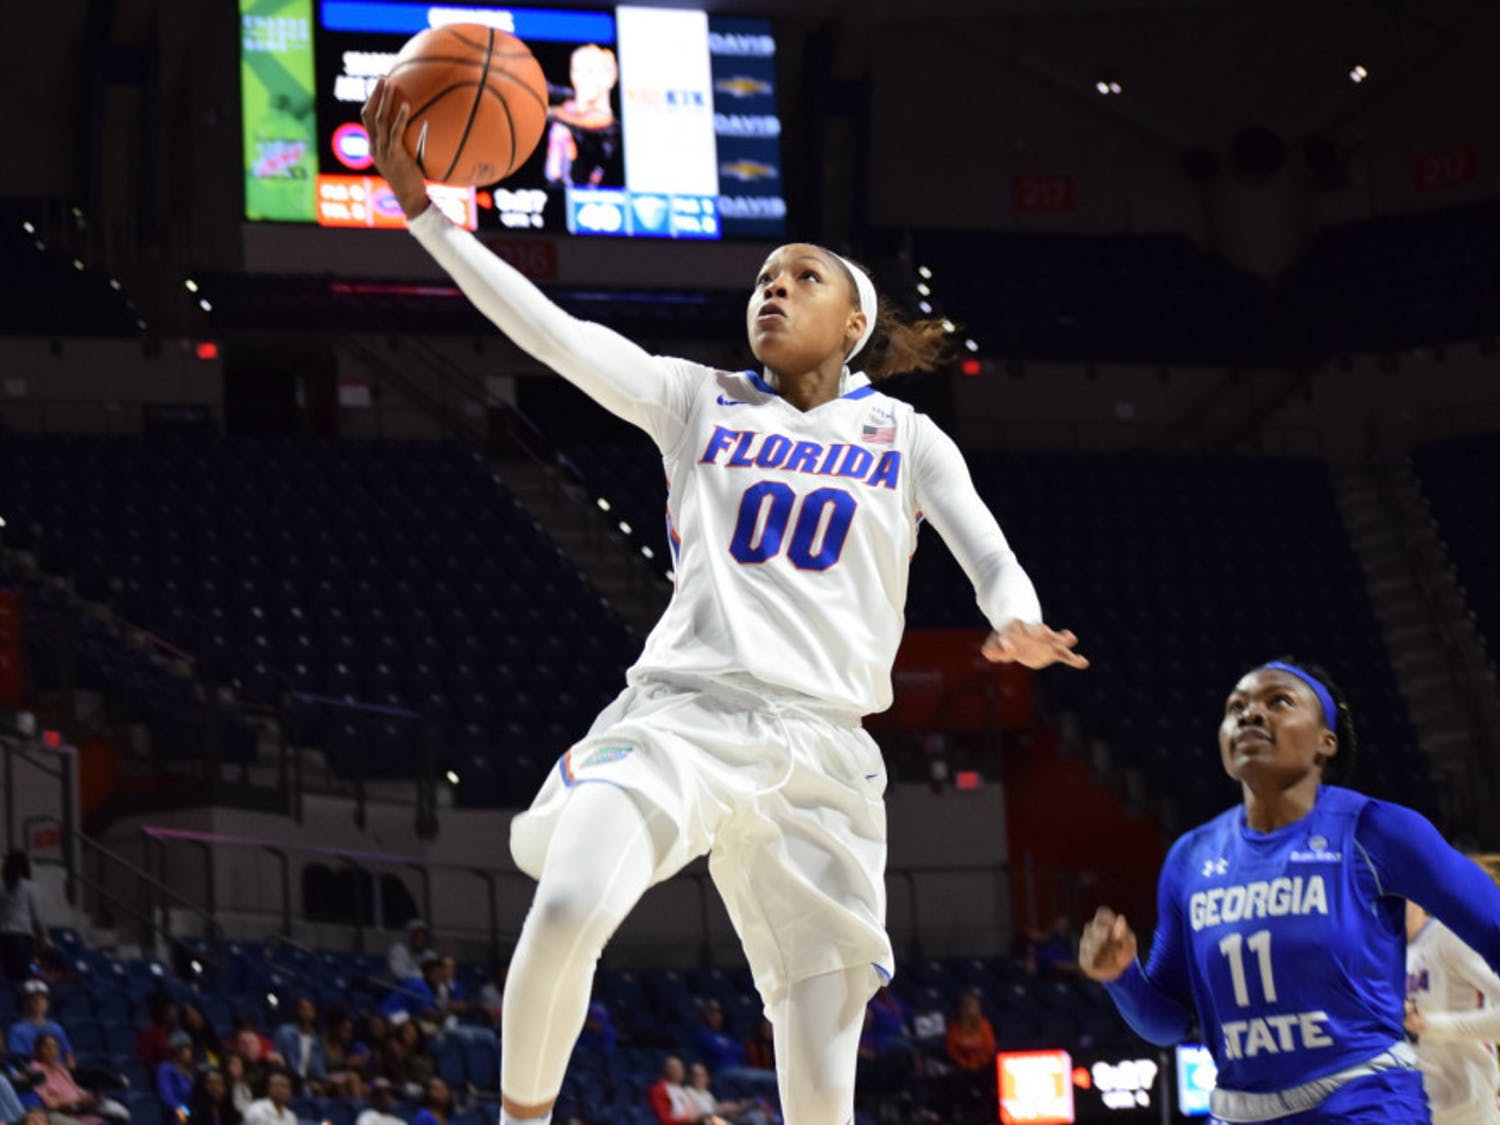 Guard Delicia Washington led the Gators in scoring with 16 points against Bethune-Cookman. She also finished with 10 rebounds and an assist.